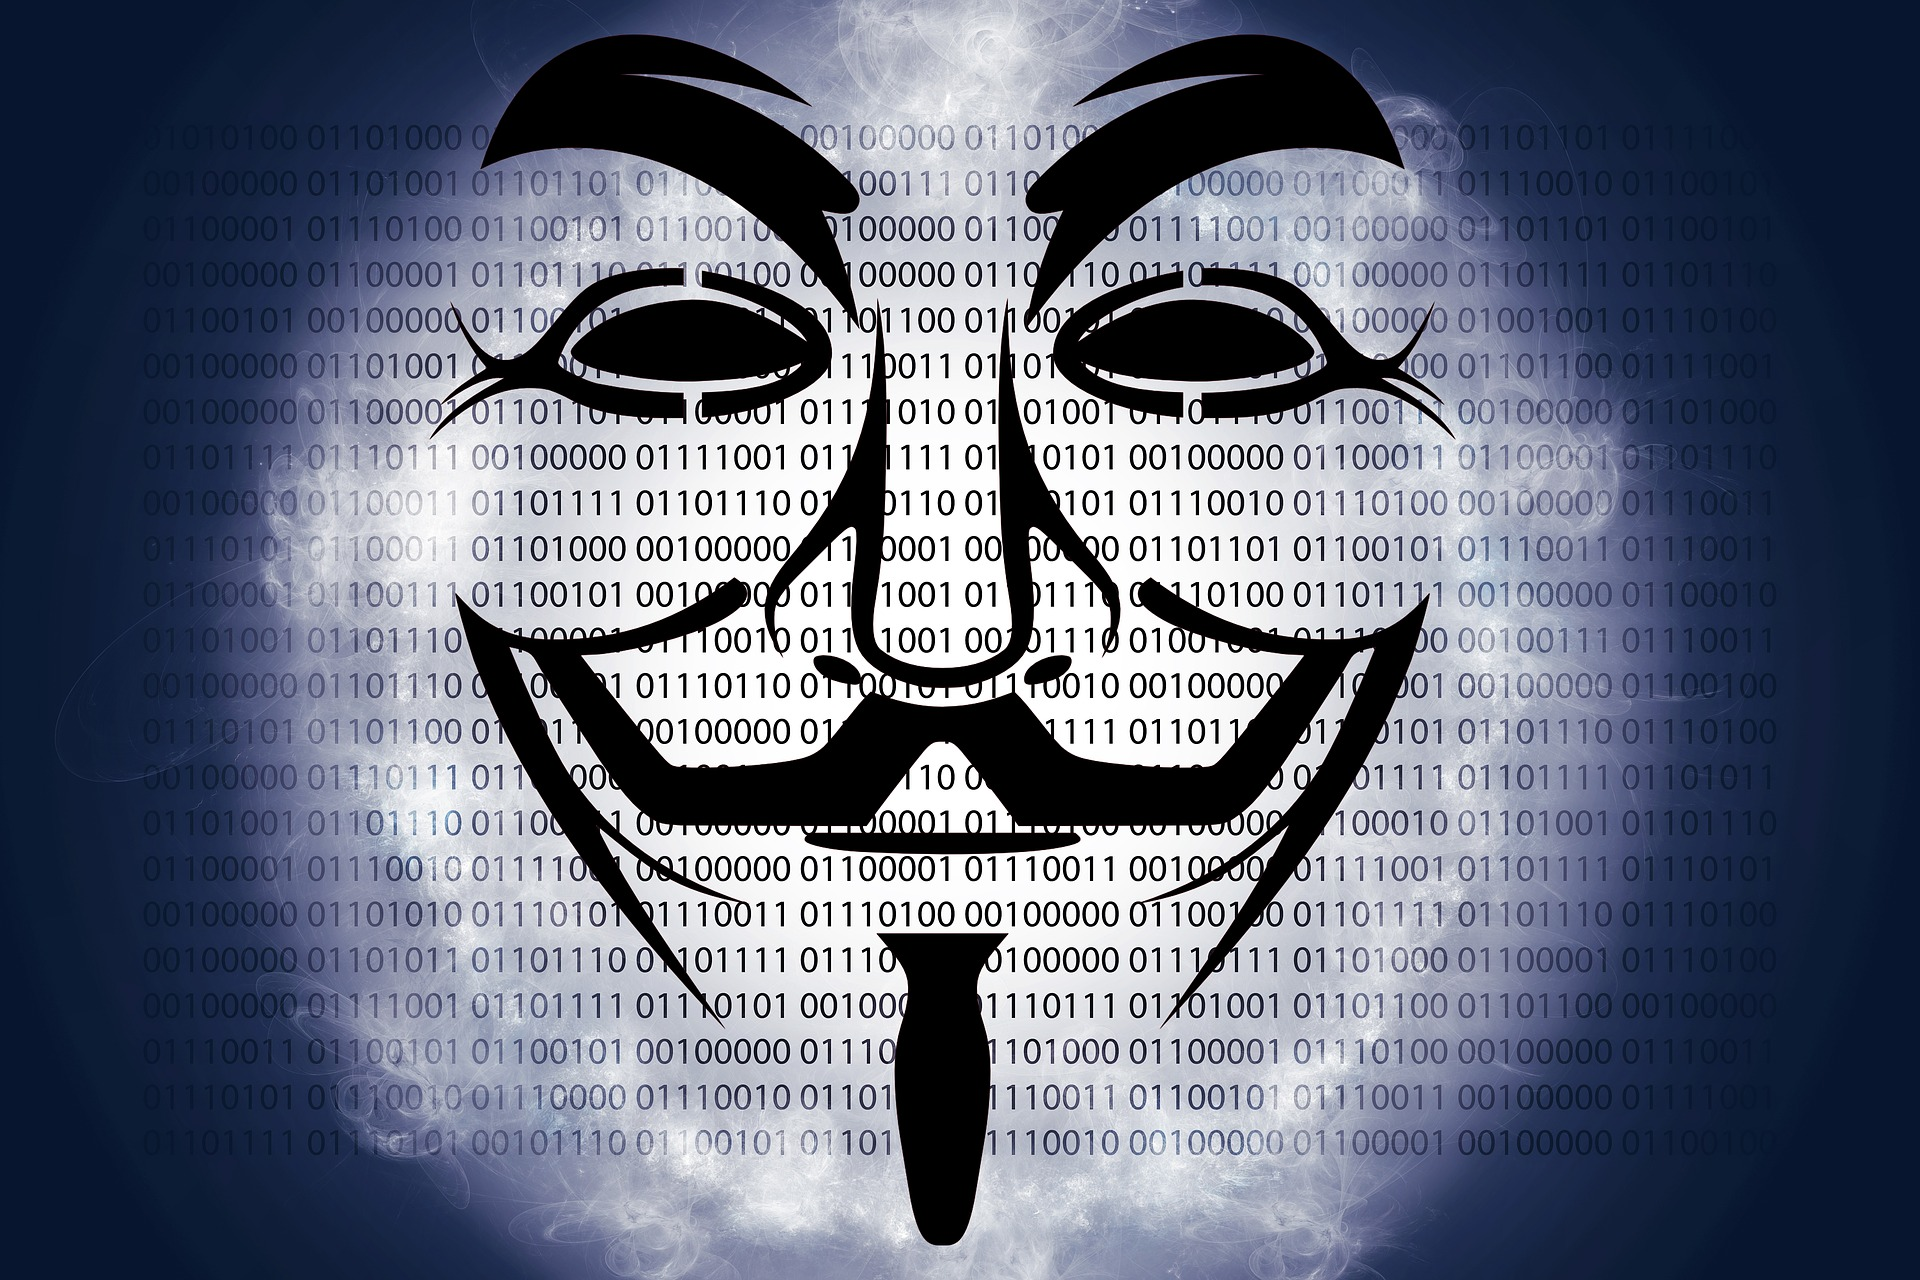 Cybercriminal groups like Anonymous are now considered a greater threat to US infrastructure than nation-states like Russia, China and Iran.